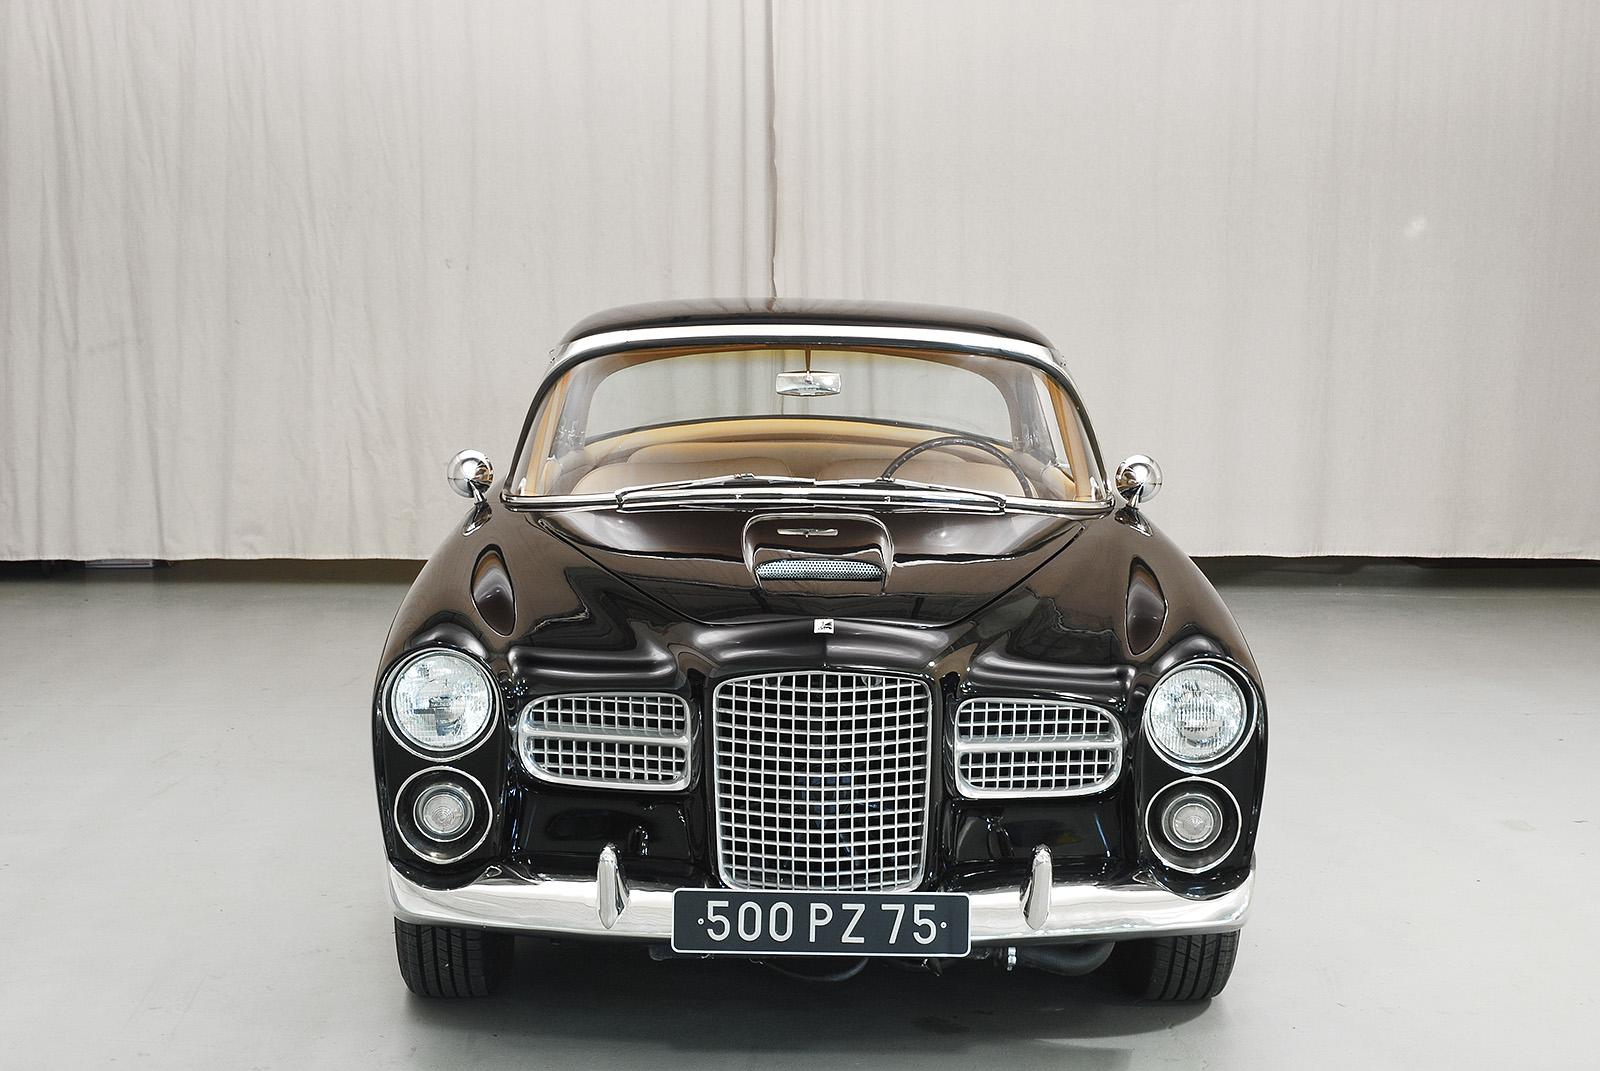 1961 Facel-Vega HK 500 Coupe | Hyman Ltd. Classic Cars